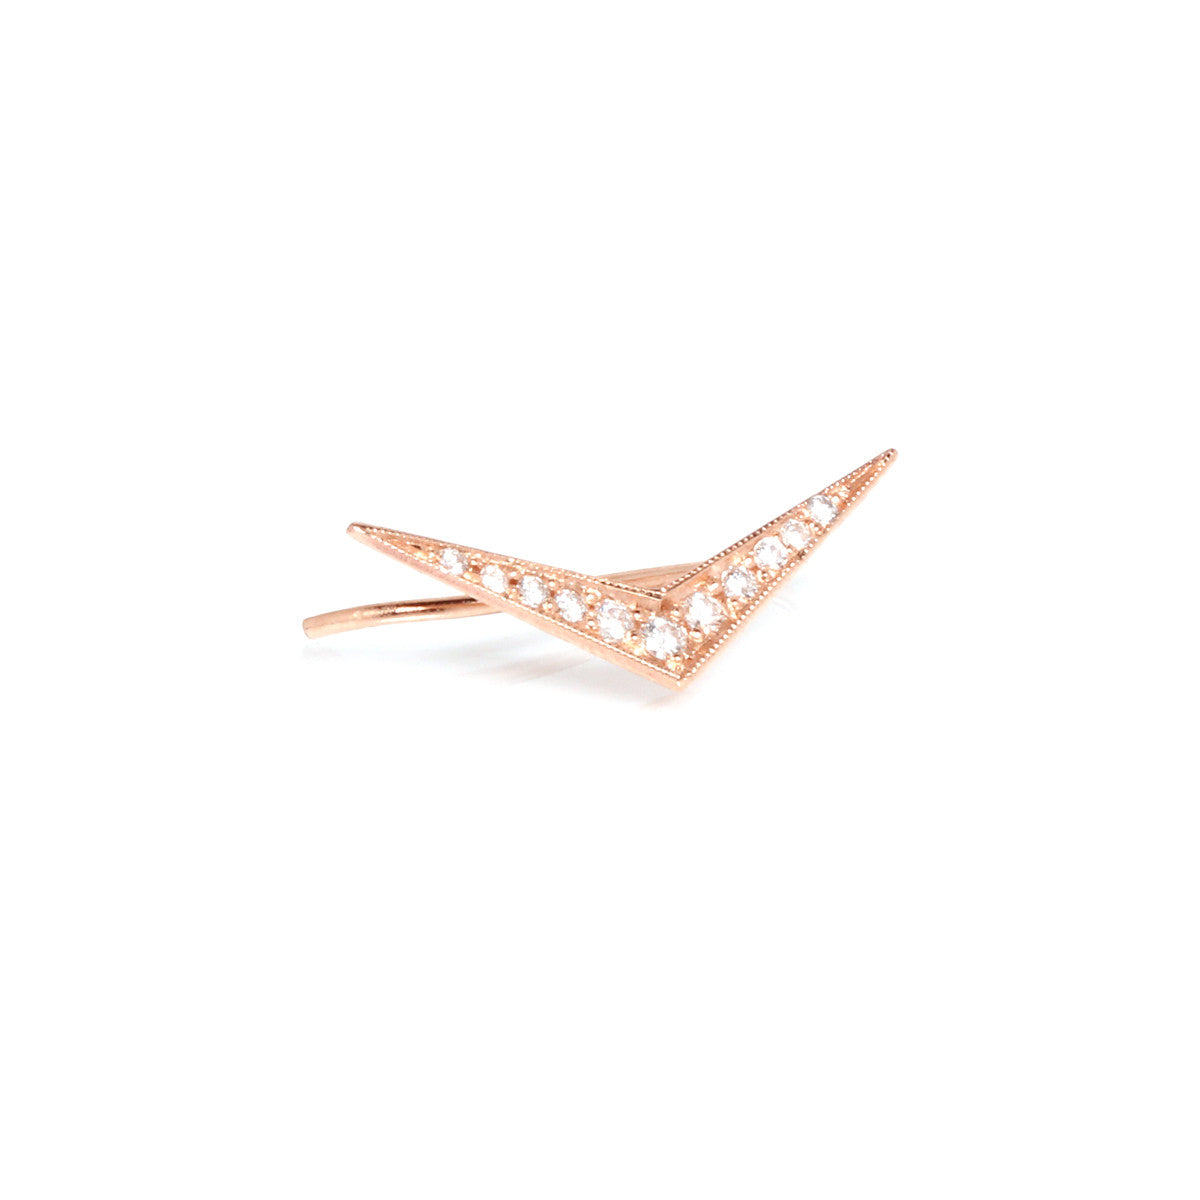 Zoë Chicco 14kt Rose Gold Flat Diamond Pave Boomerang Ear Shield